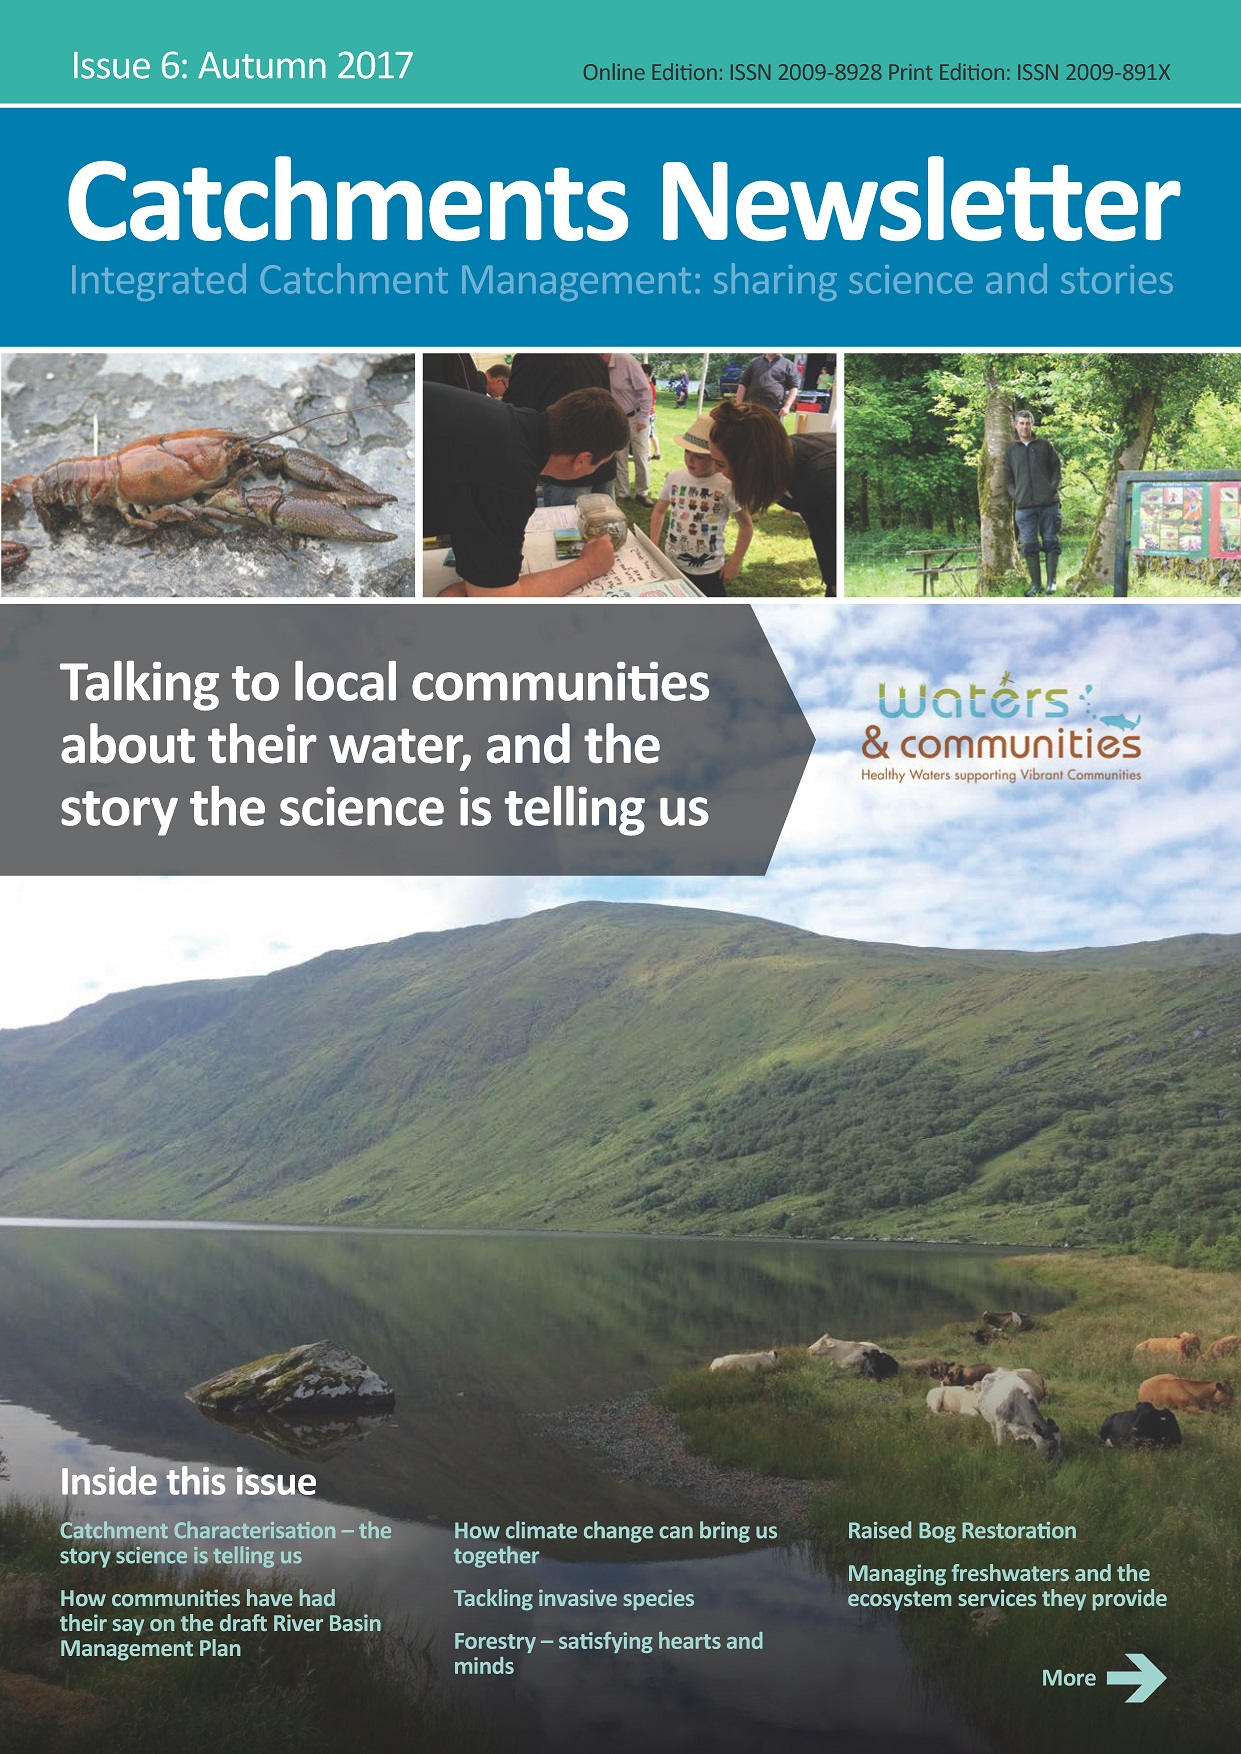 Catchments Newsletter - sharing science and stories. Autumn 2017.